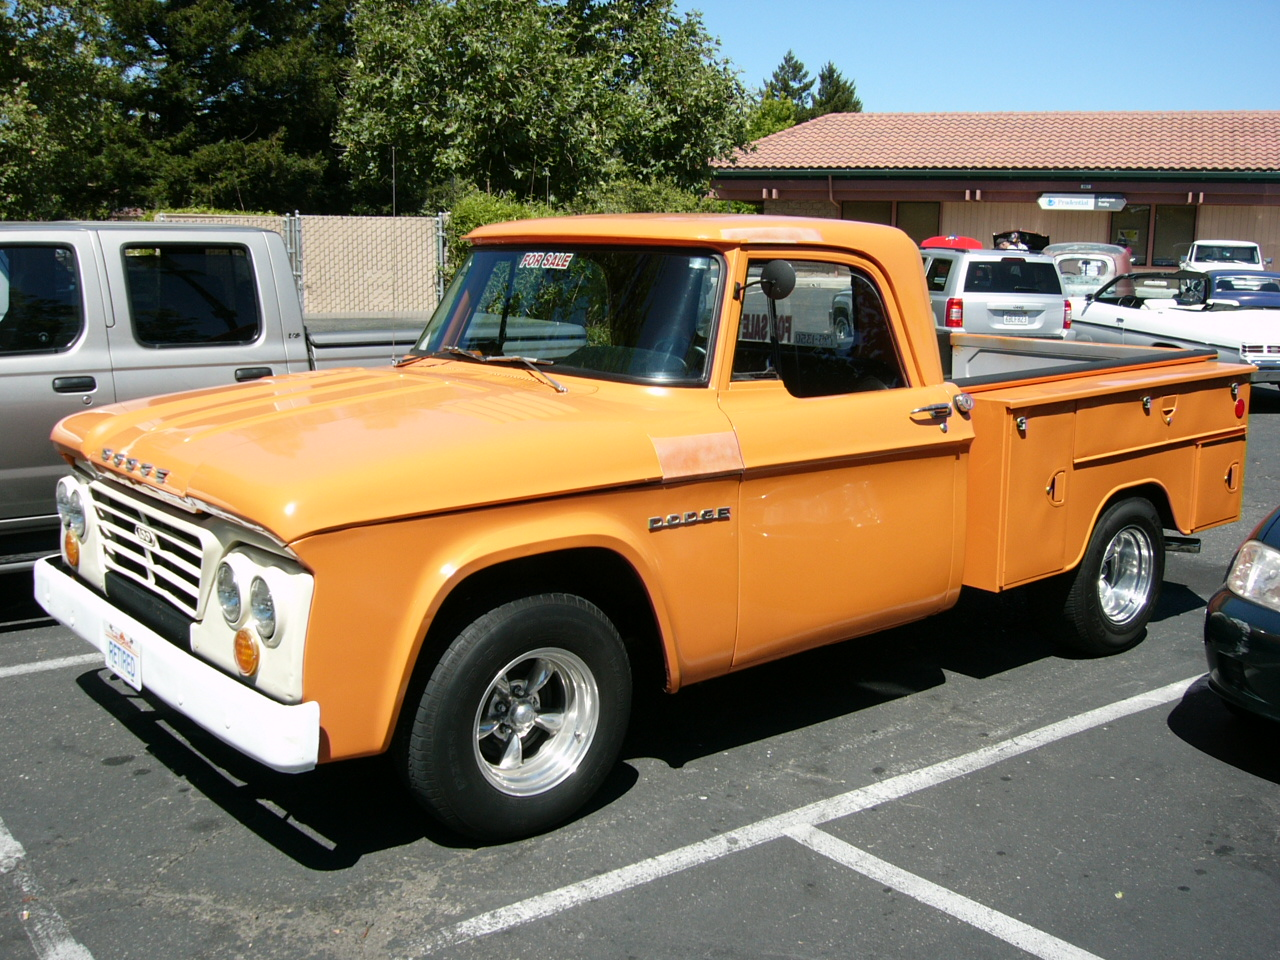 1962 Dodge 100 work truck 1 by RoadTripDog on DeviantArt